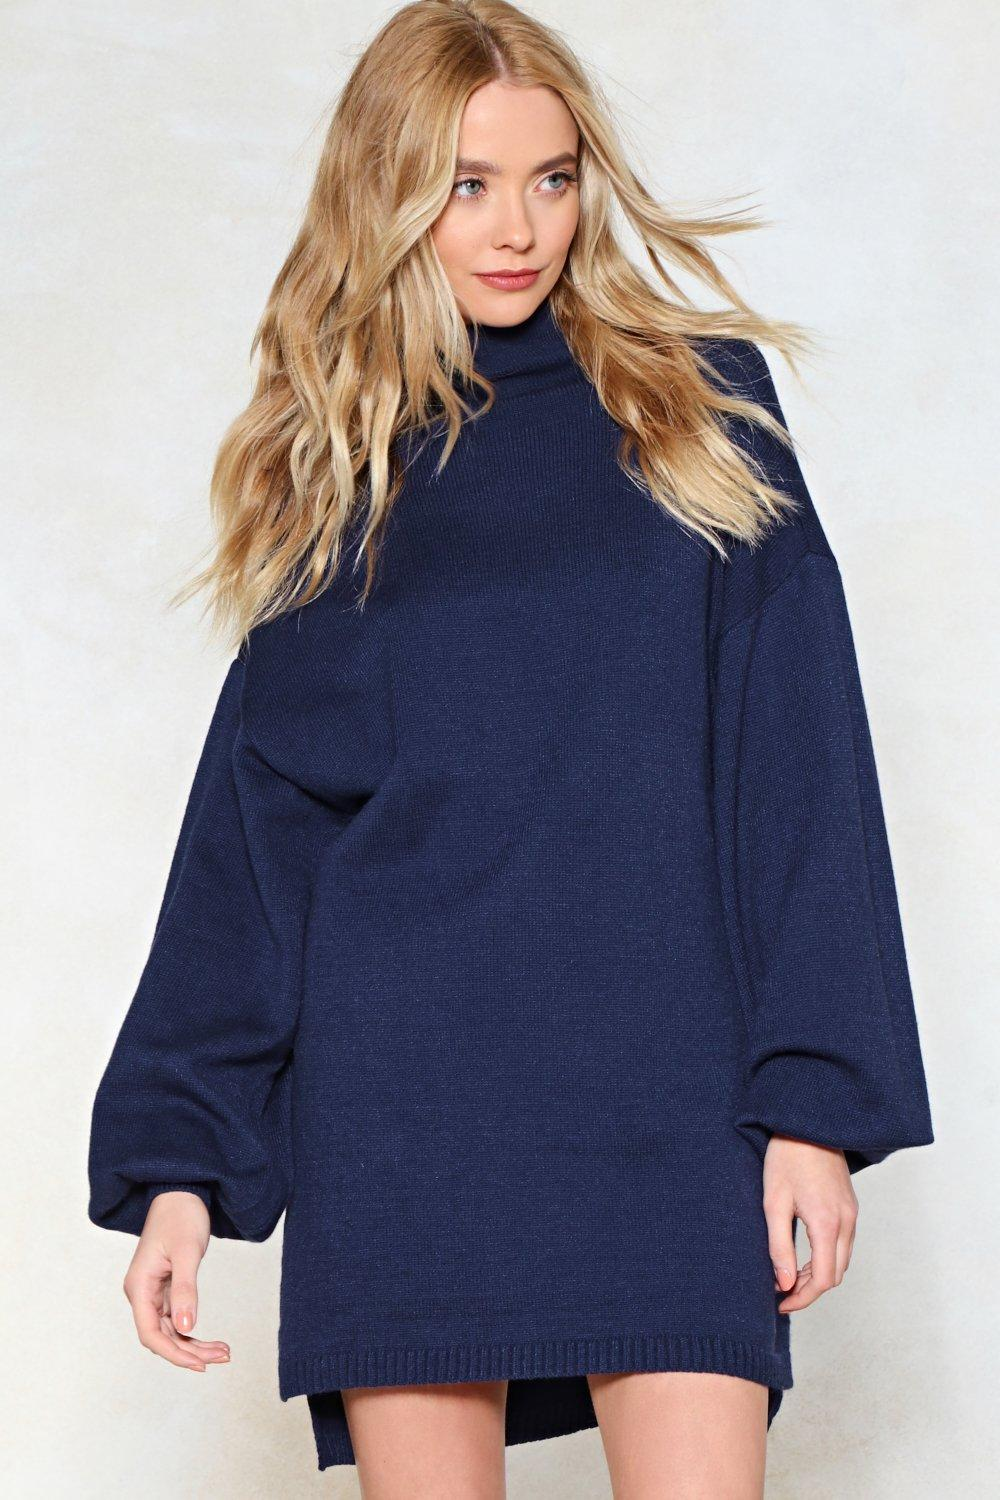 80d7aead134 Womens Blue Knit Comes Naturally Sweater Dress